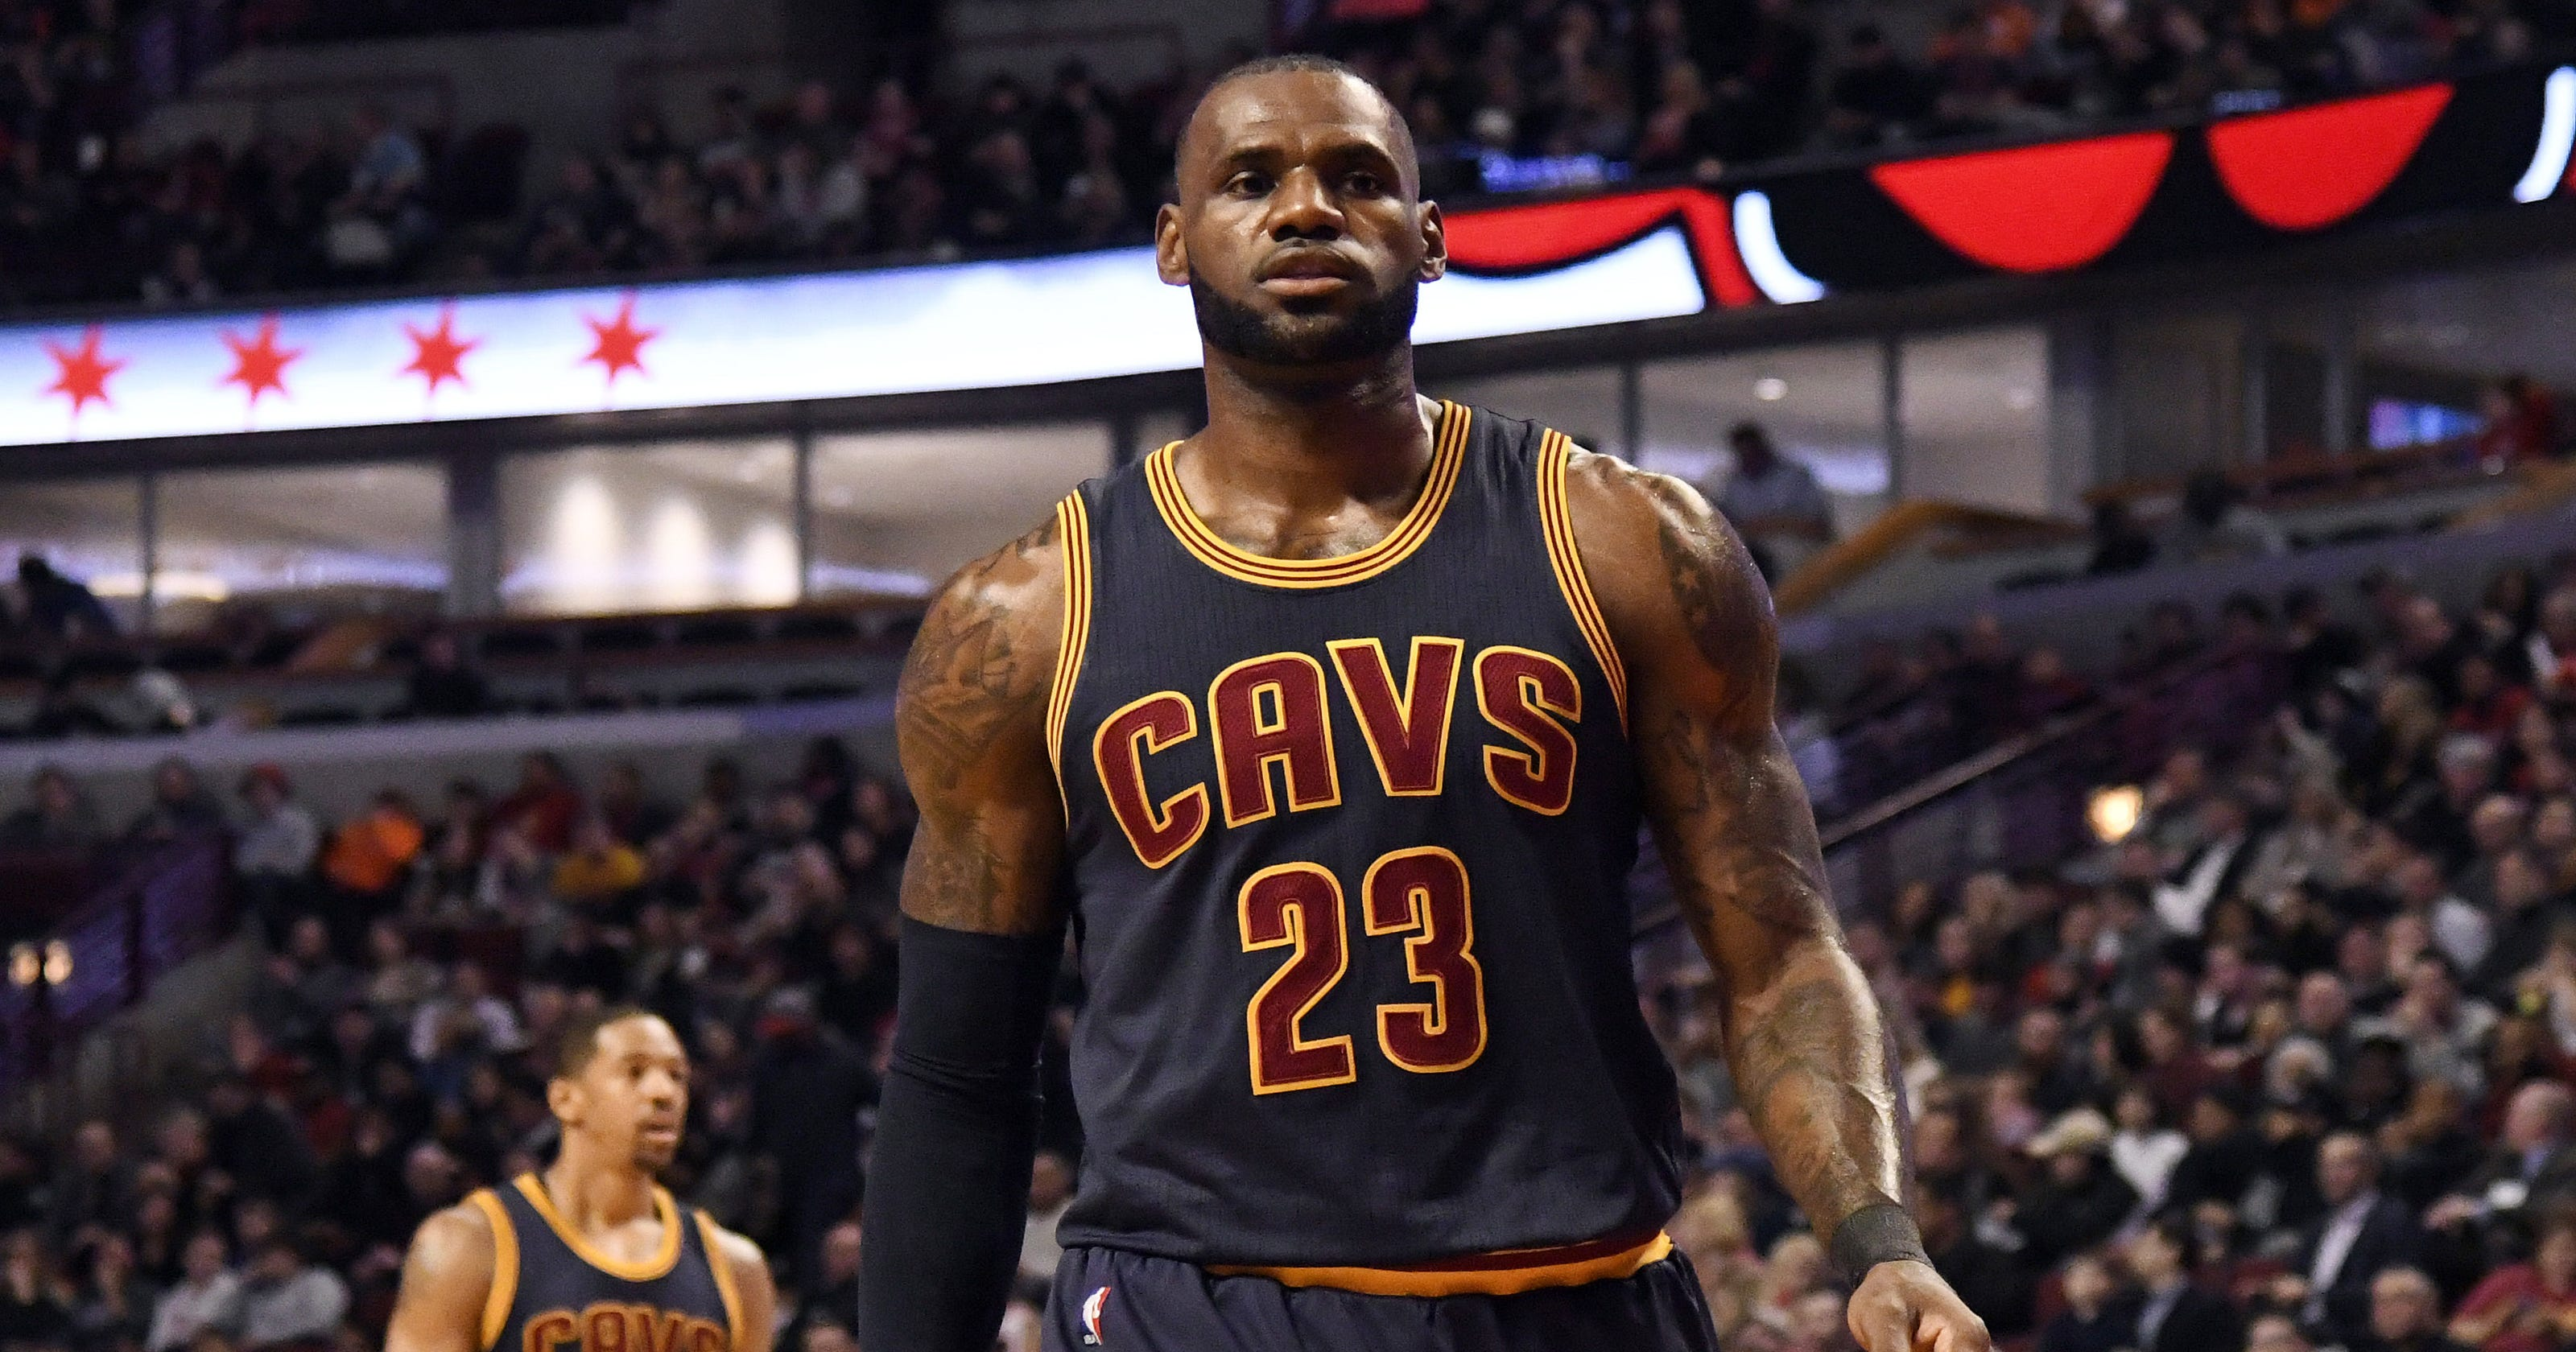 f2a7e9c9eca9 LeBron locked in for Game 4 as Cavs look to take 3-1 lead over Celtics